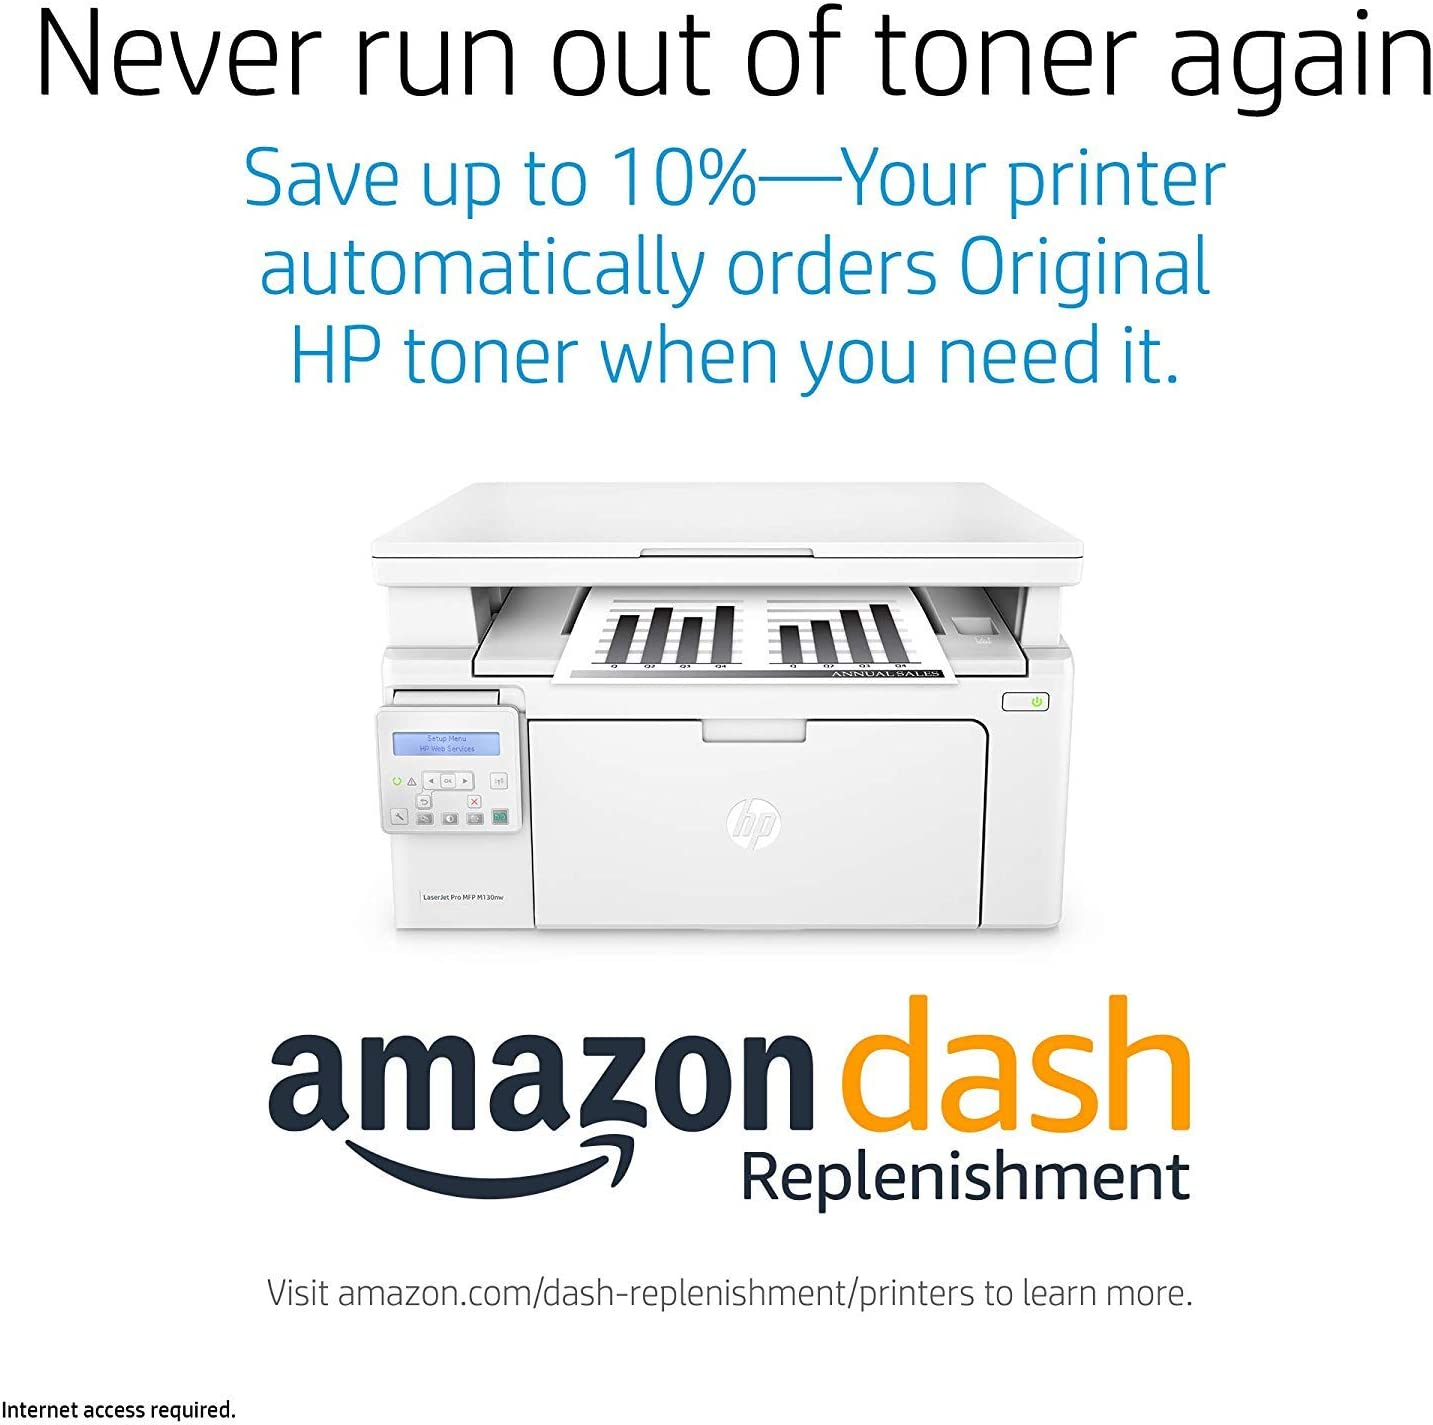 G3Q58A Replaces HP M125nw Laser Printer HP LaserJet Pro M130nw All-in-One Wireless Laser Printer Dash Replenishment ready